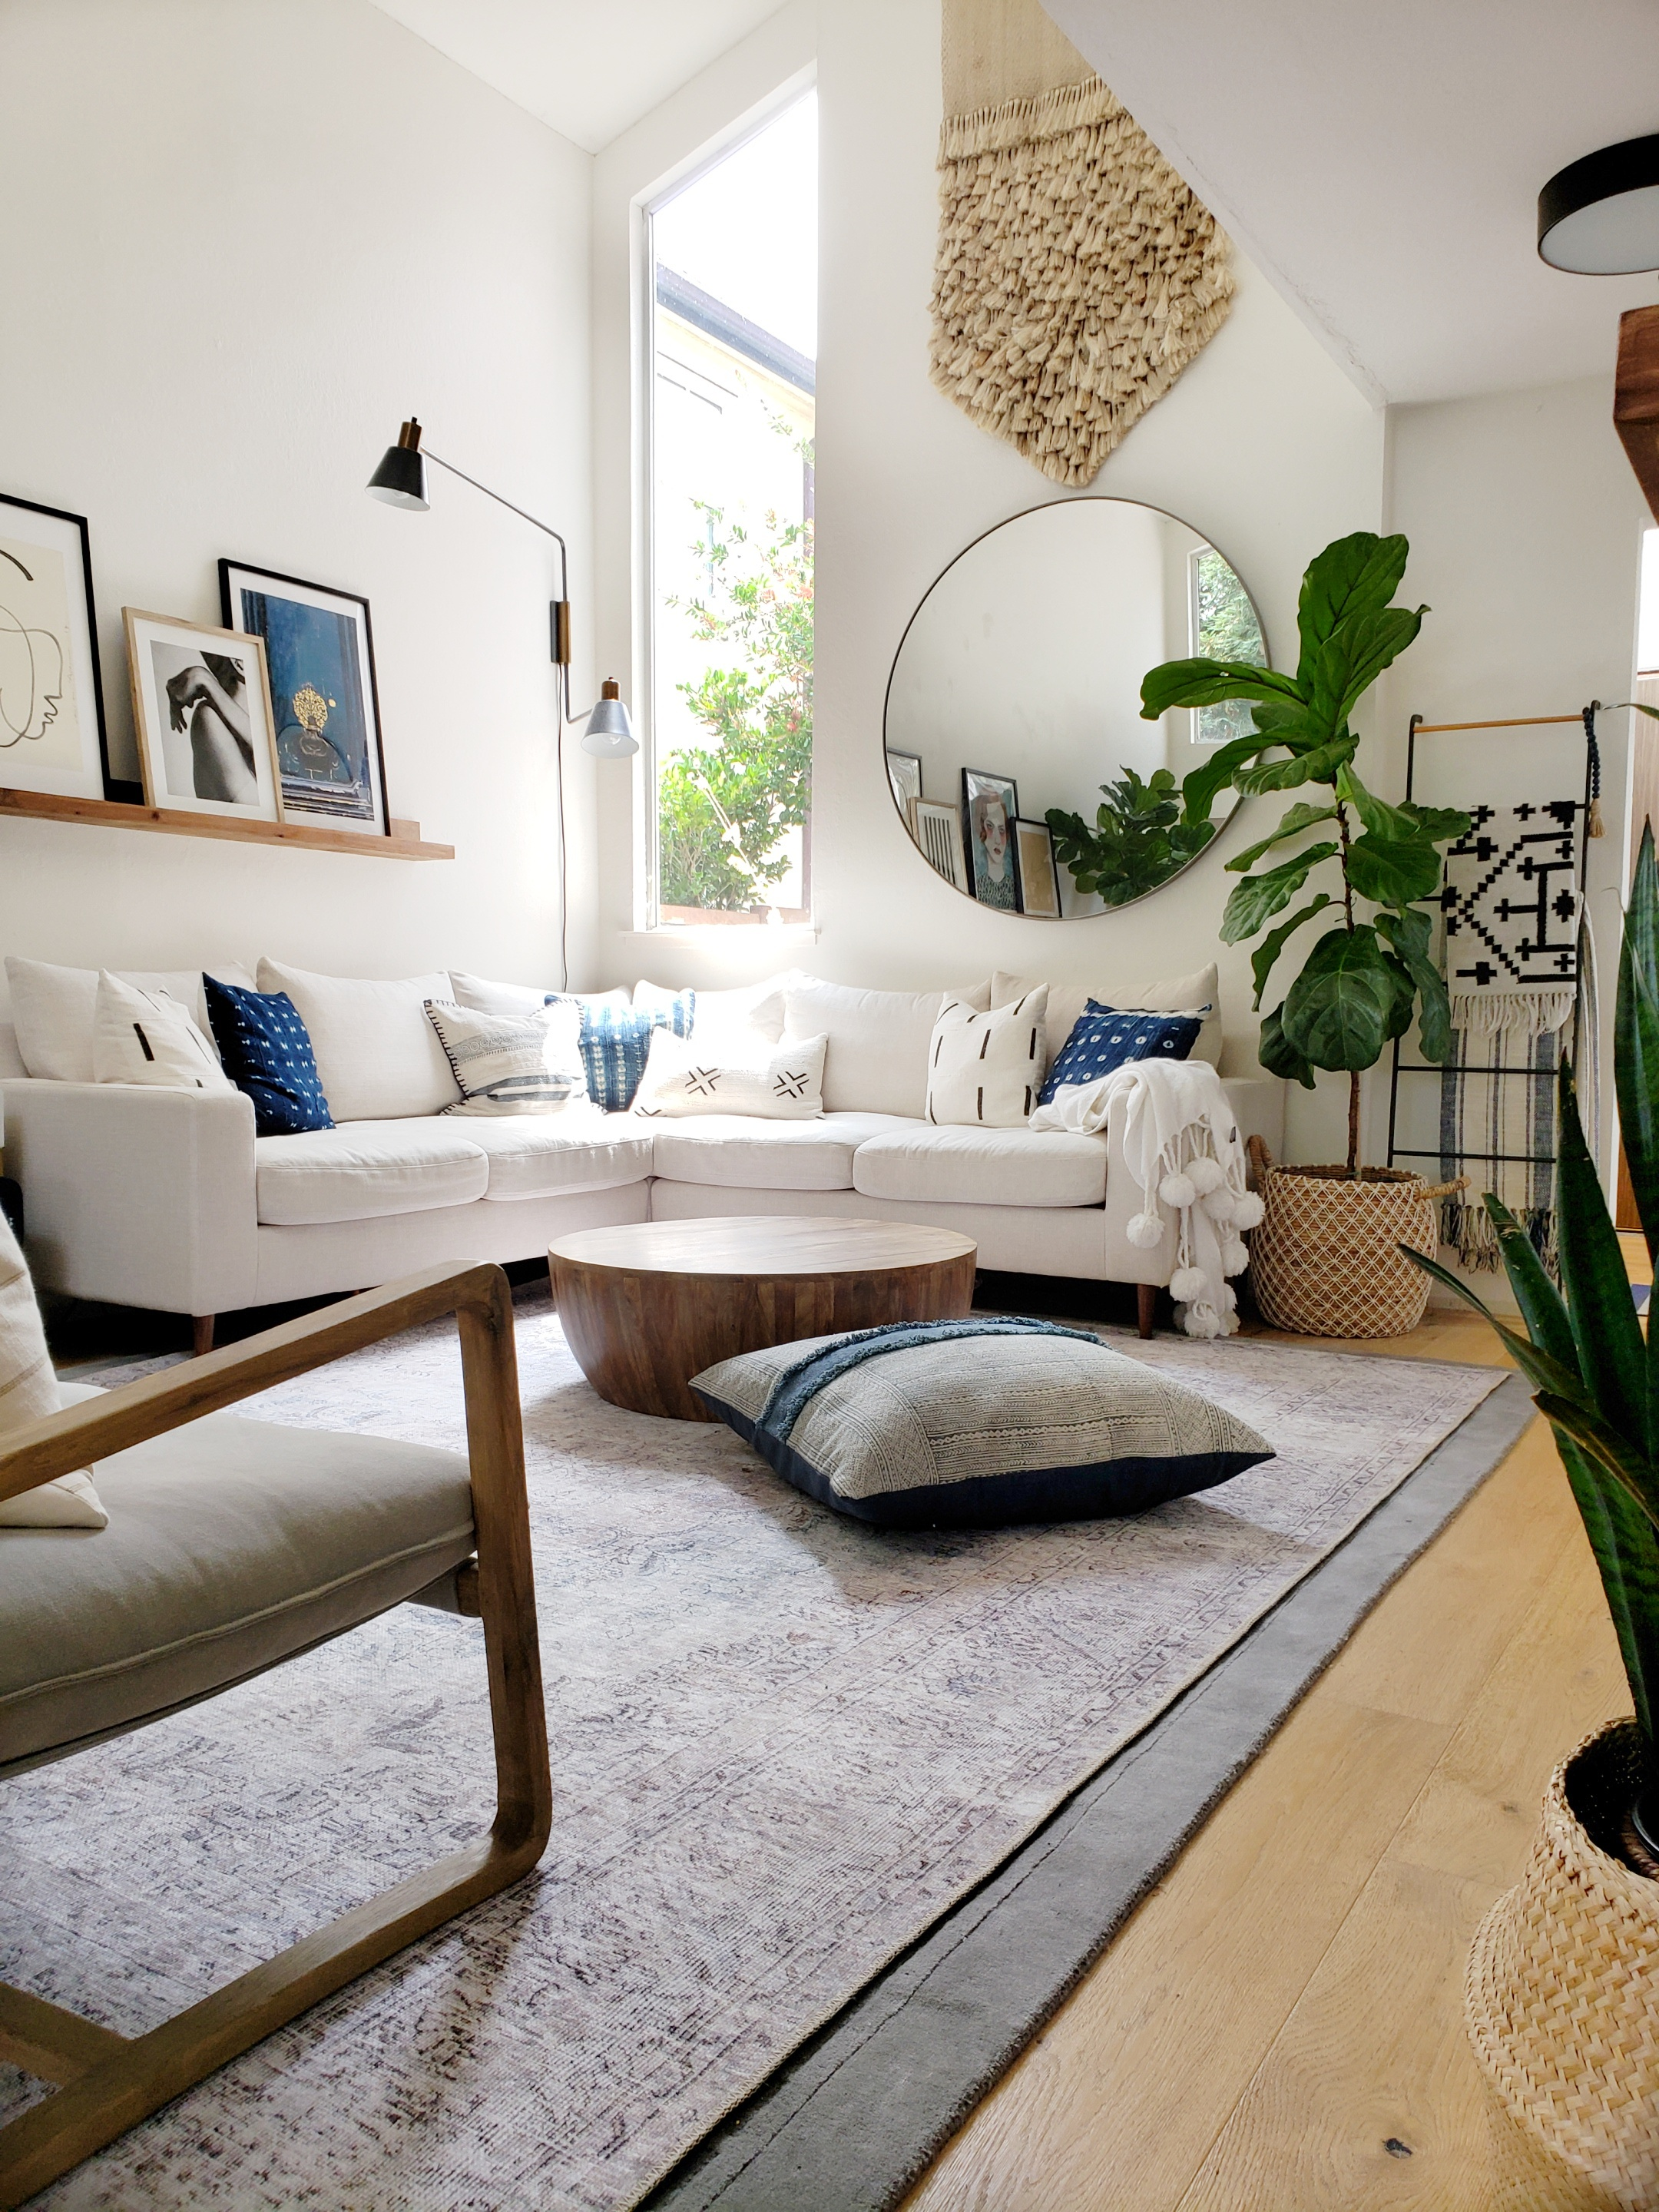 SHOP THE LIVING ROOM